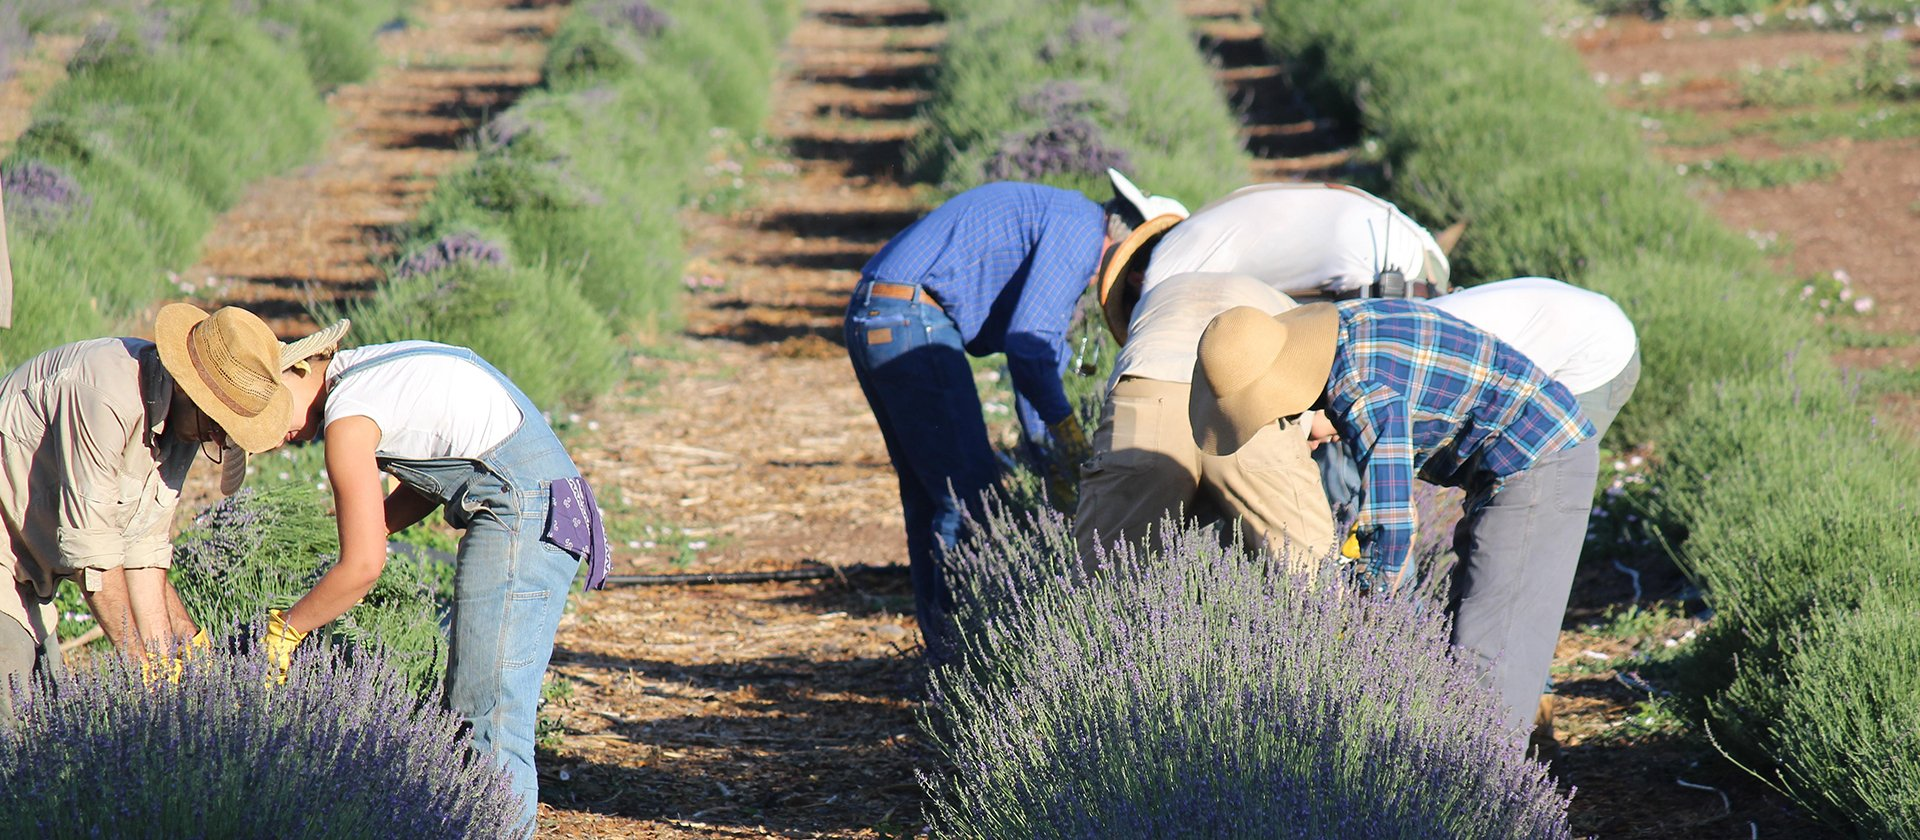 Lavender_Harvest_2014_volunteers_2048x2048.jpg